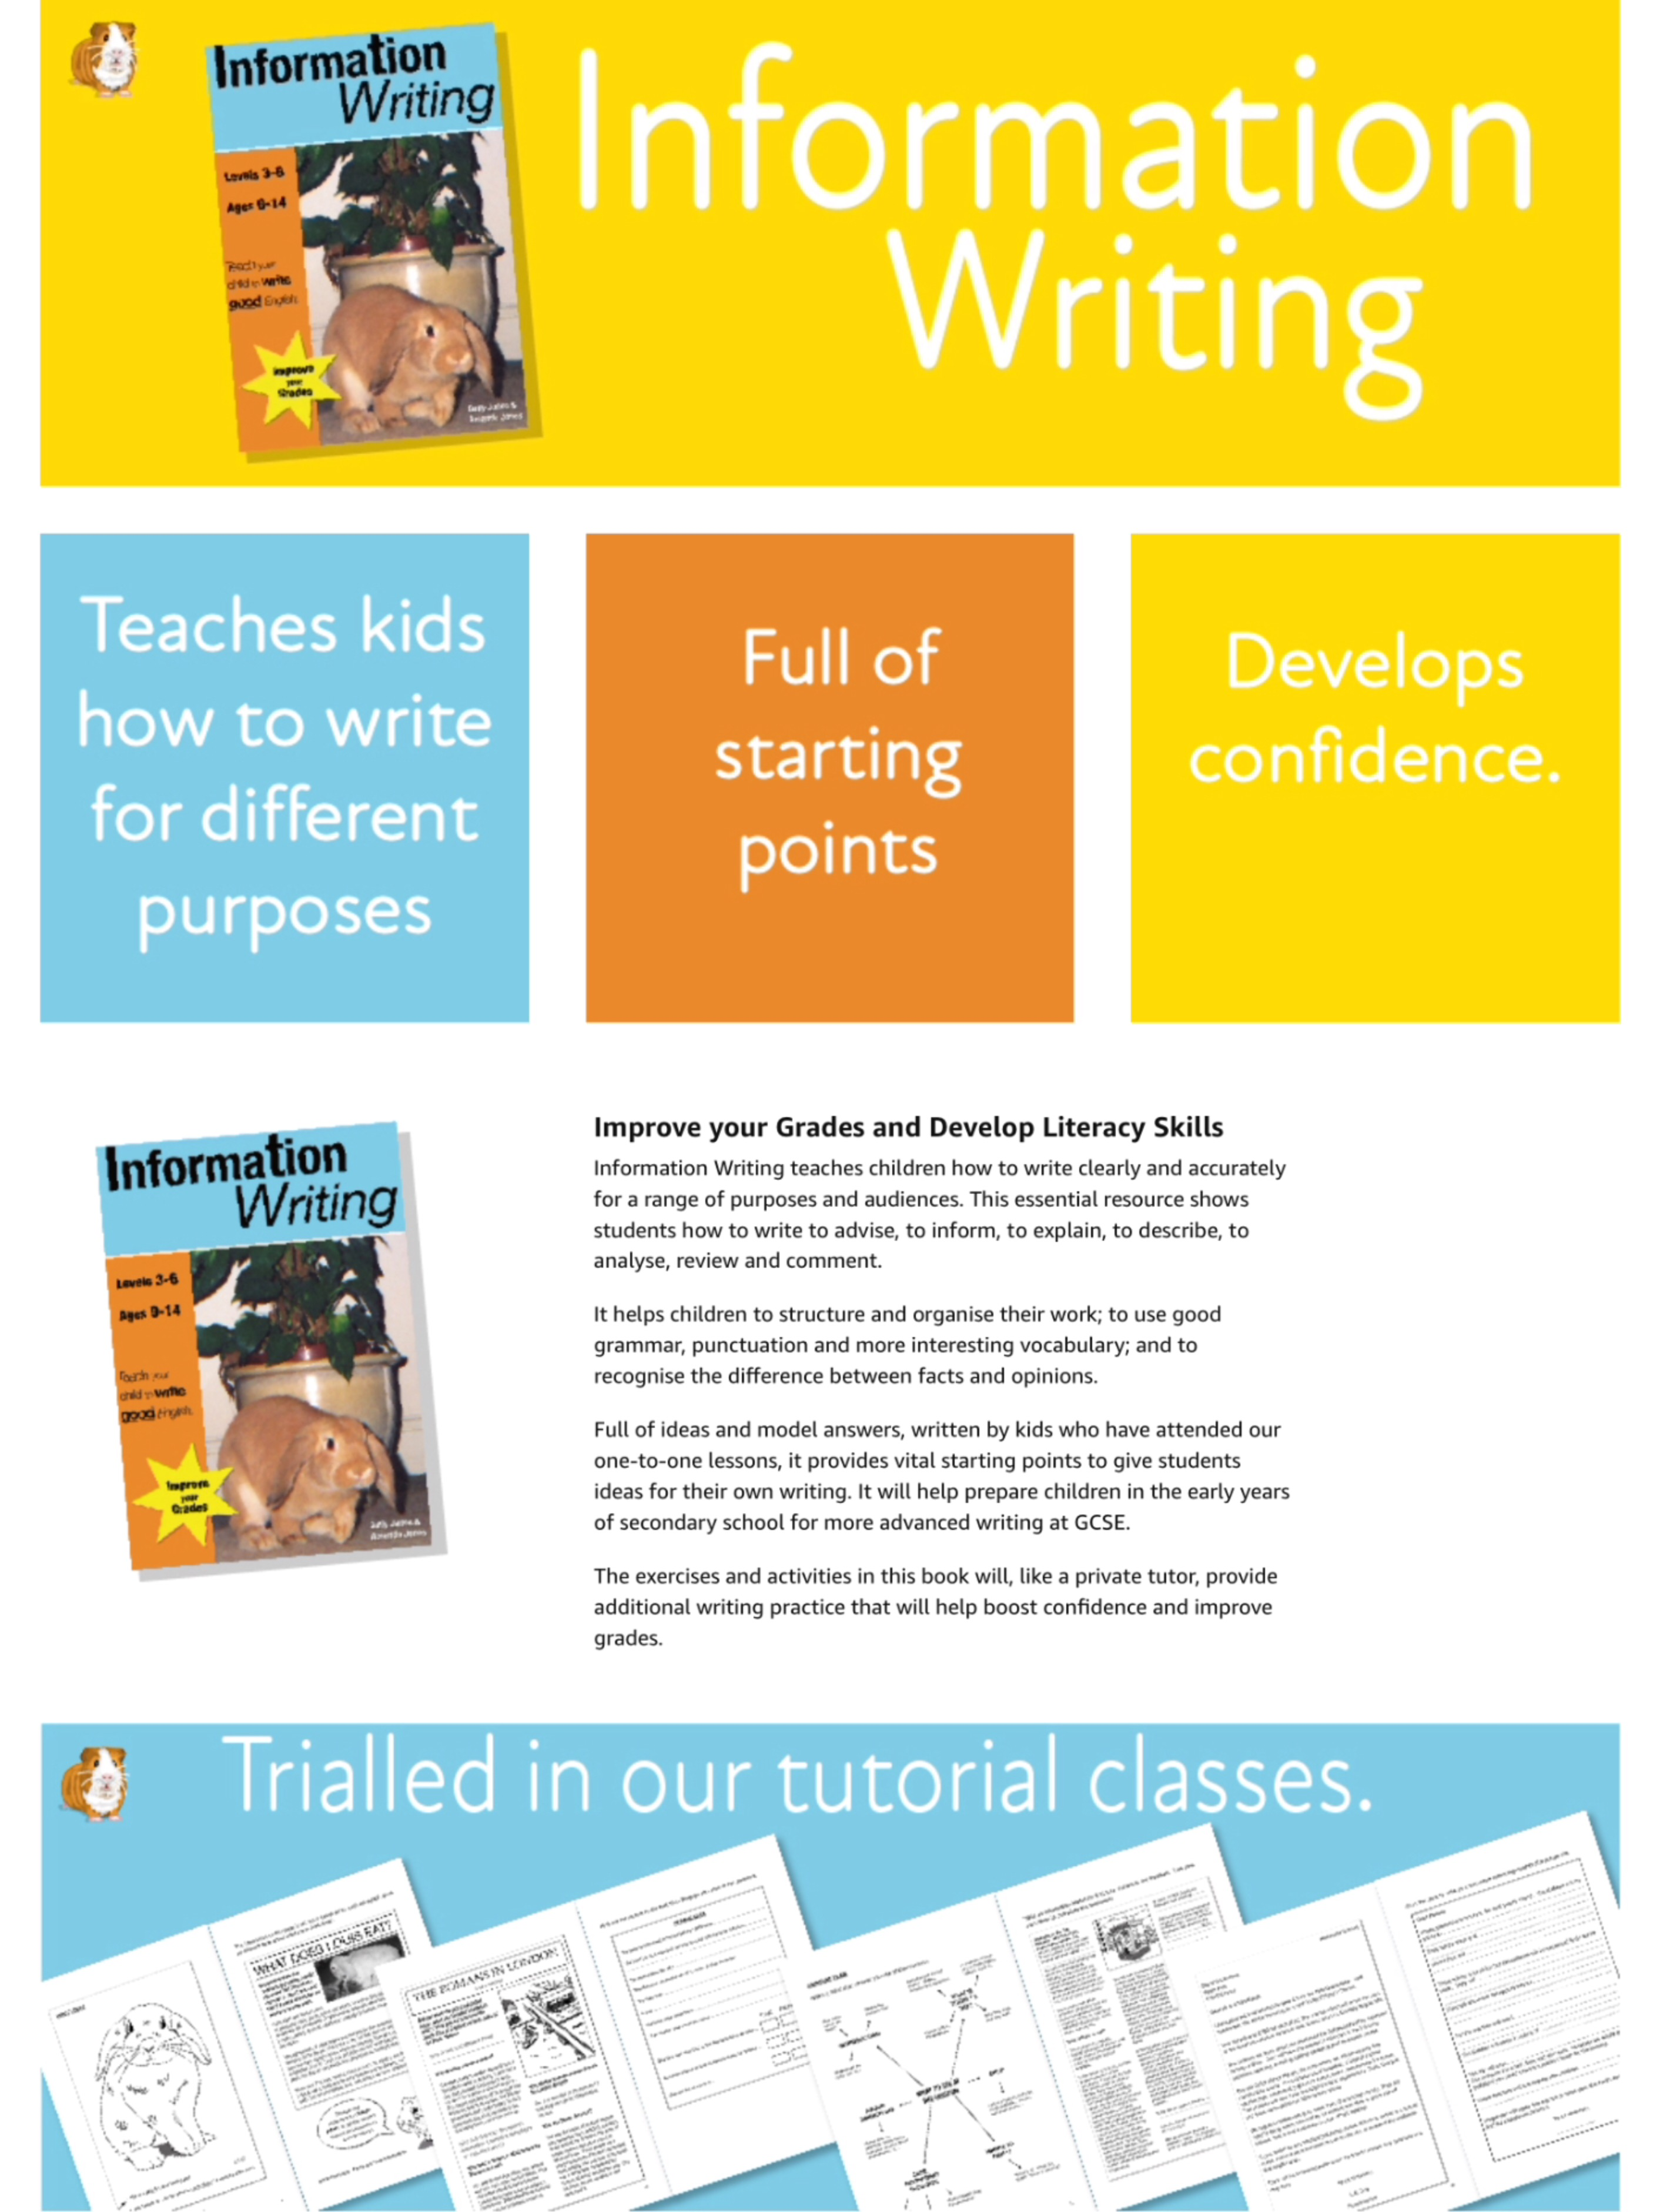 Teach Your Child To Write Good English Series (Complete Series books 1-3) 9-14 years